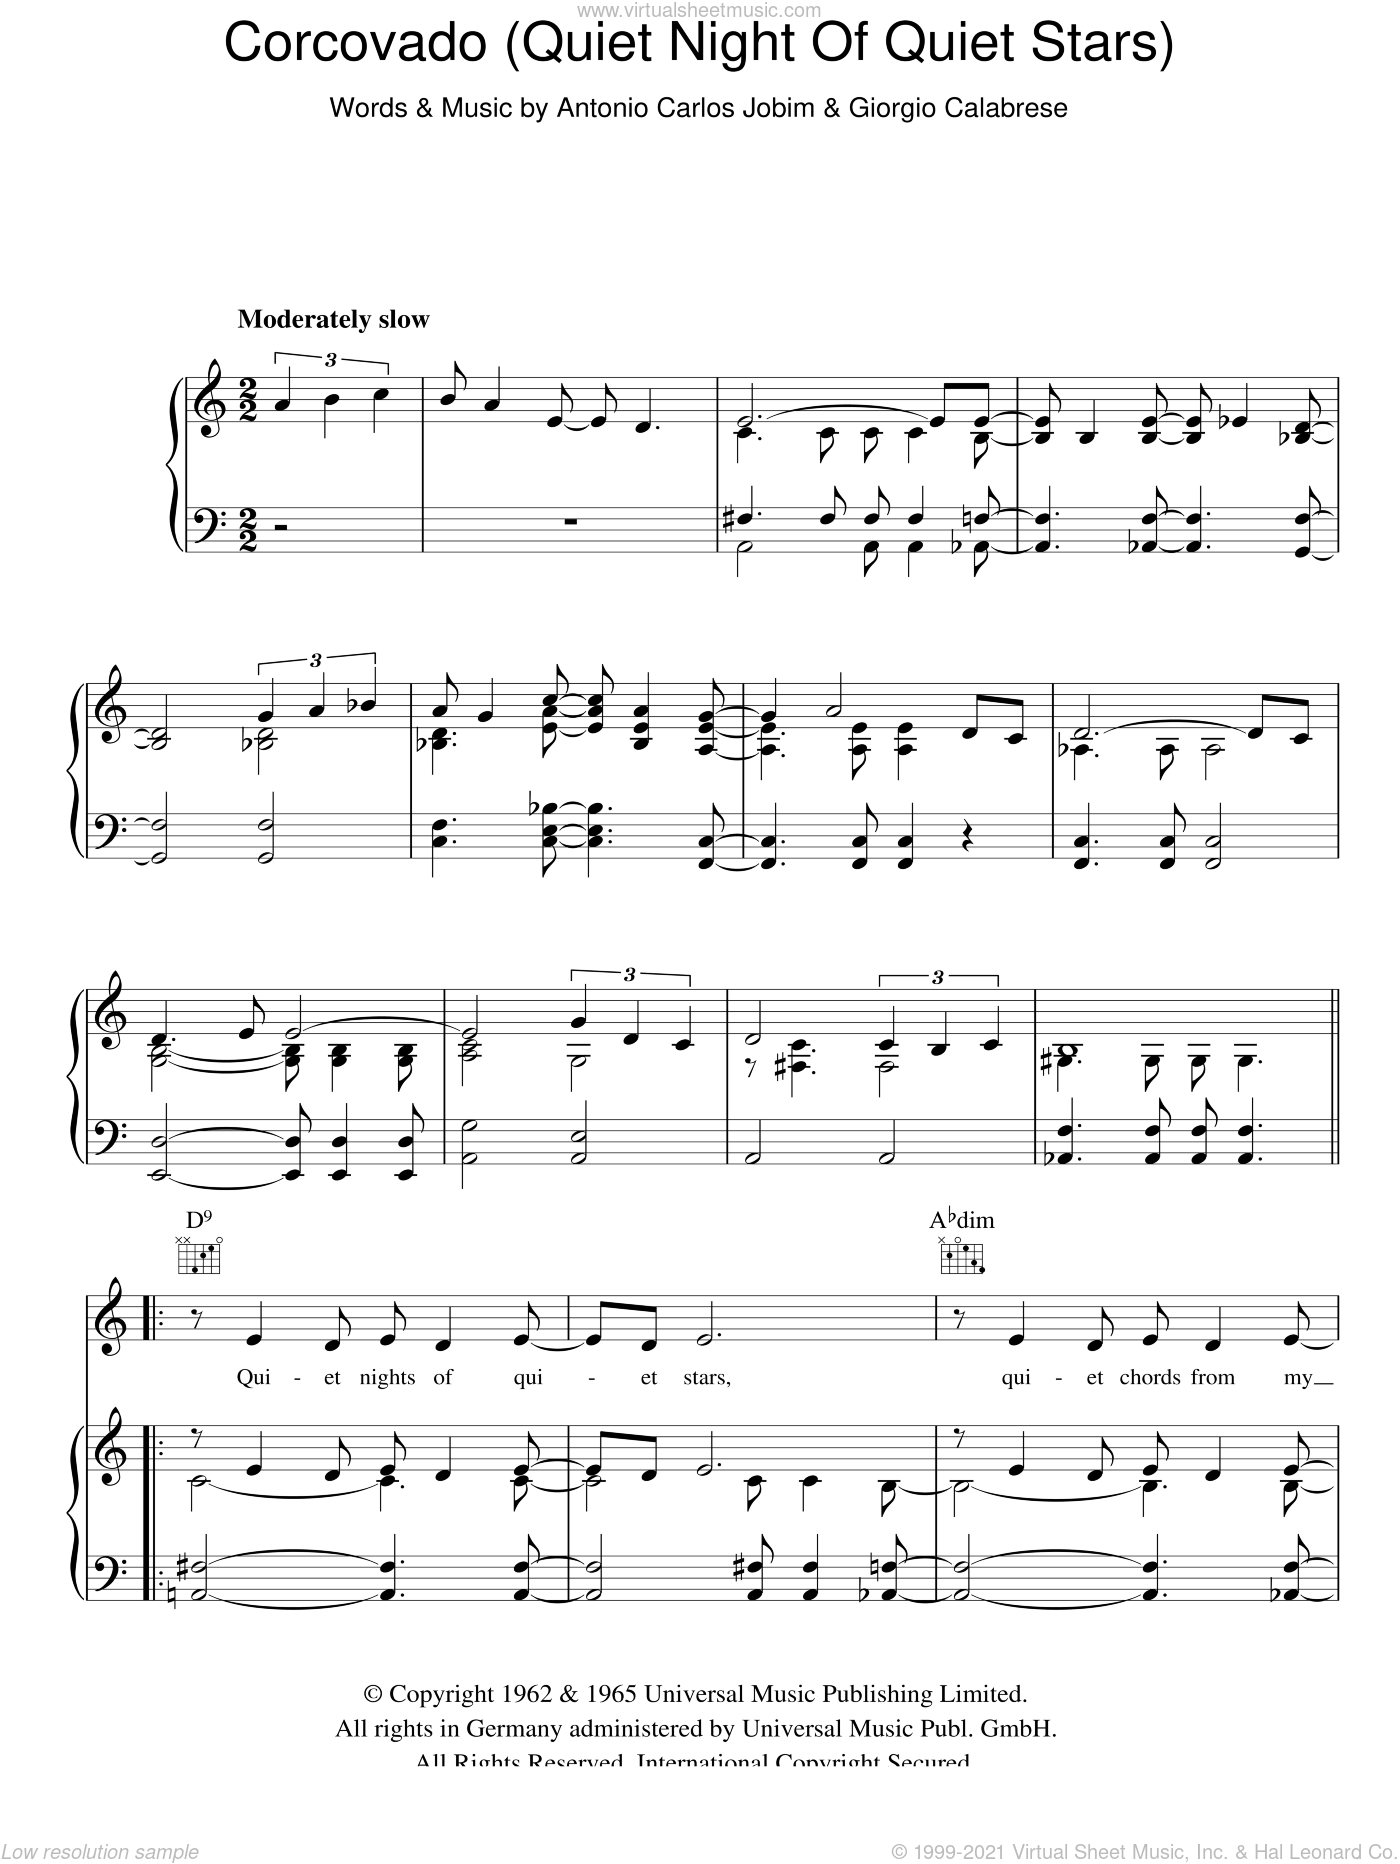 Corcovado (Quiet Nights Of Quiet Stars) sheet music for voice, piano or guitar by Giorgio Calabrese